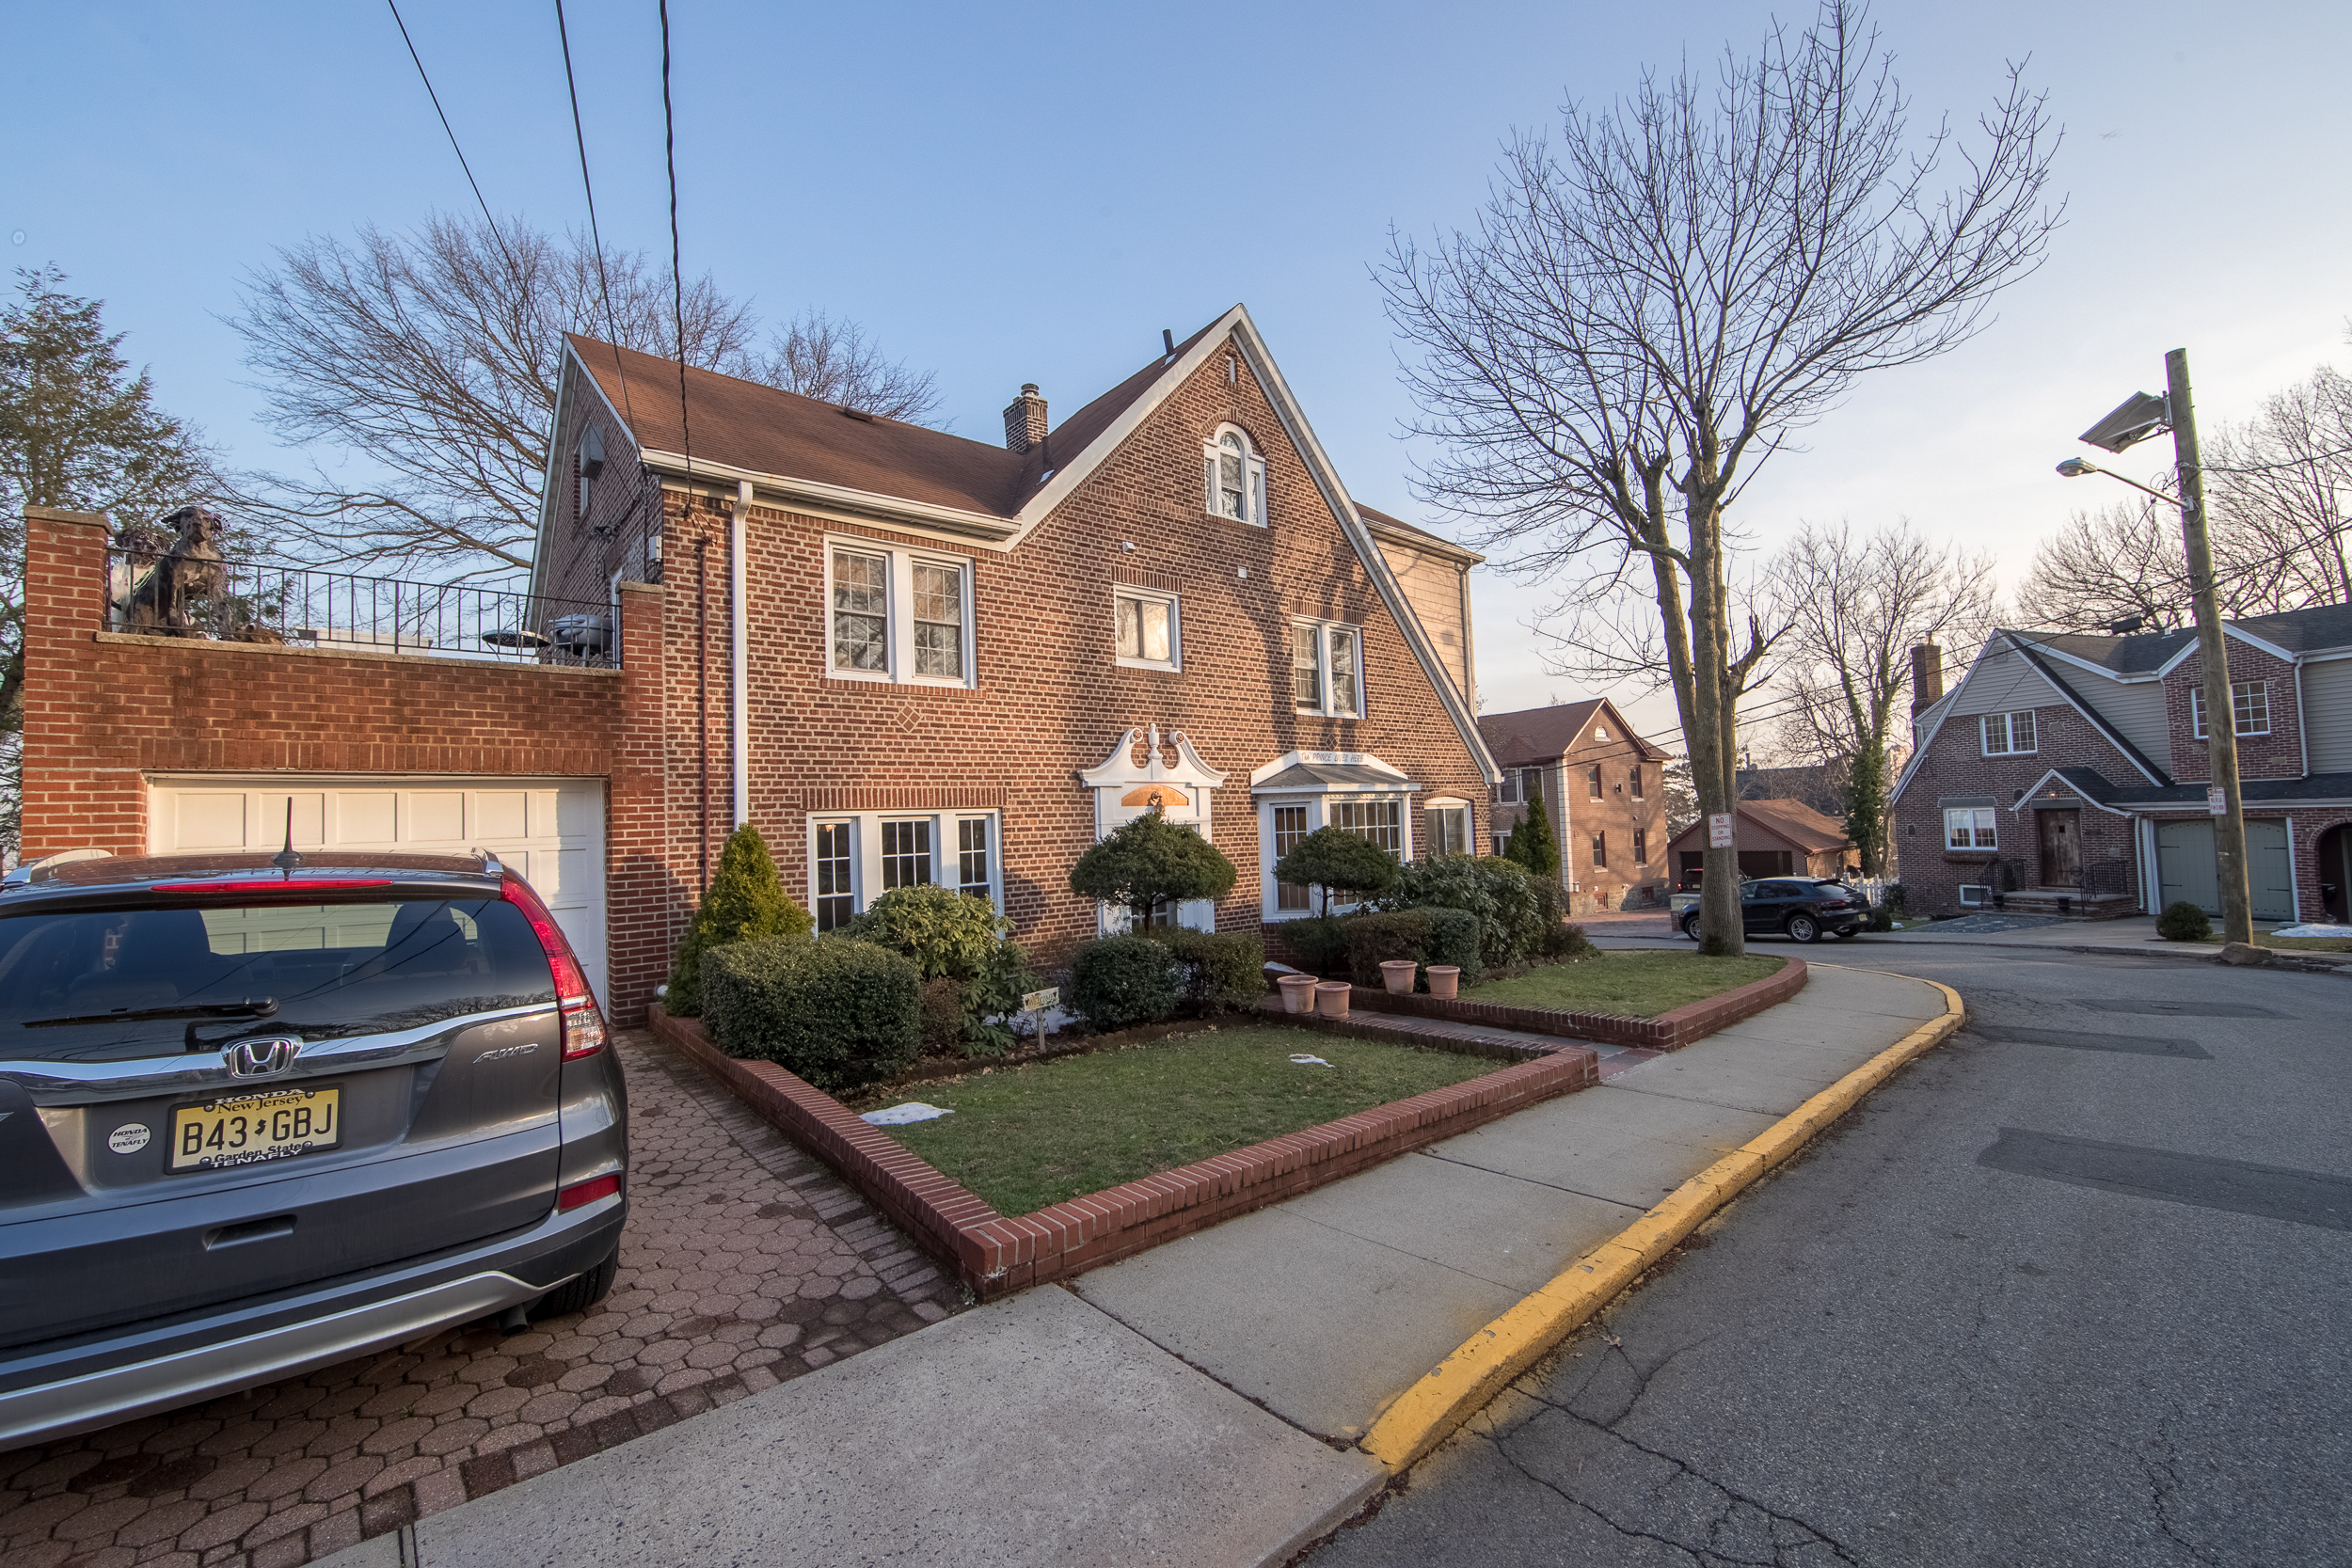 444 Oncrest Terrace, Cliffside Park, NJ